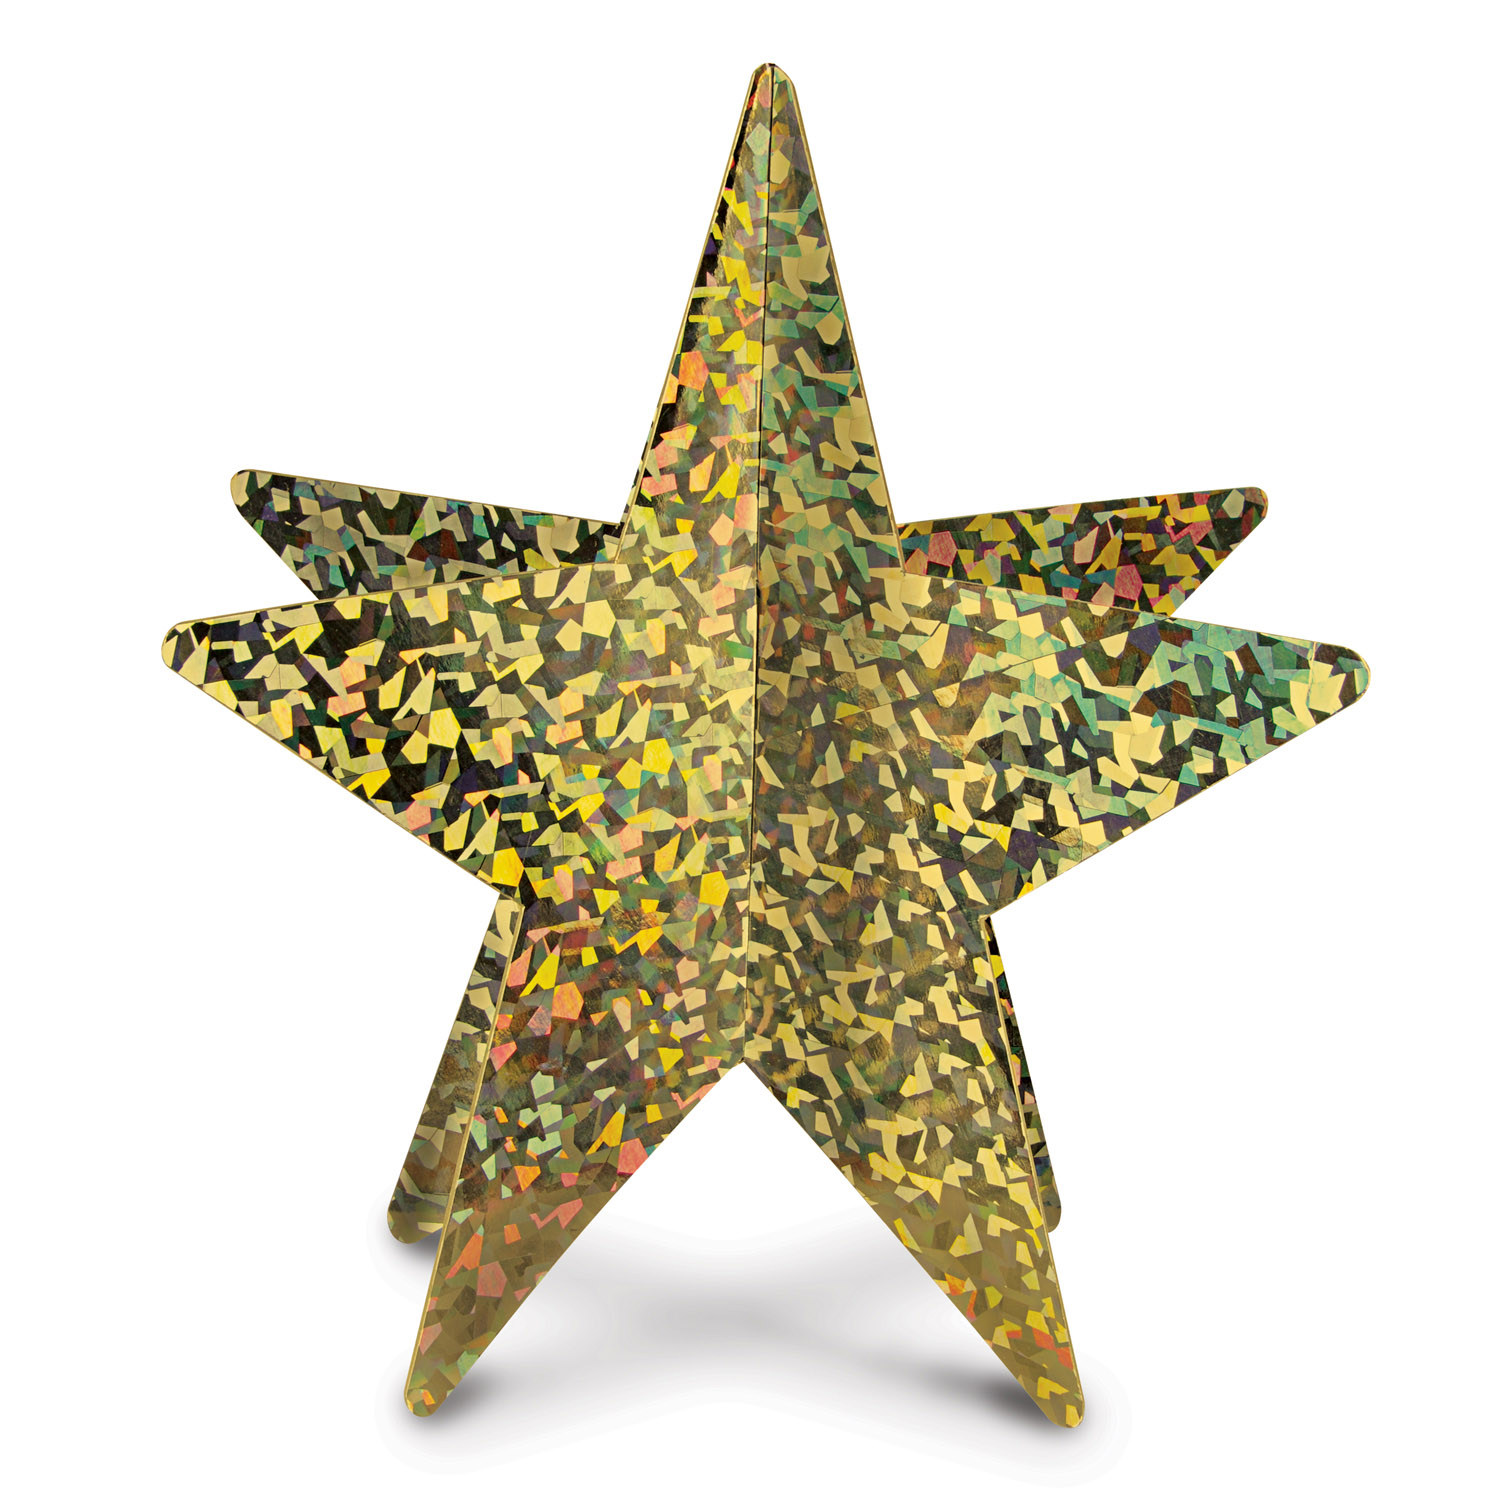 Gold prismatic card stock star designed in 3-D.